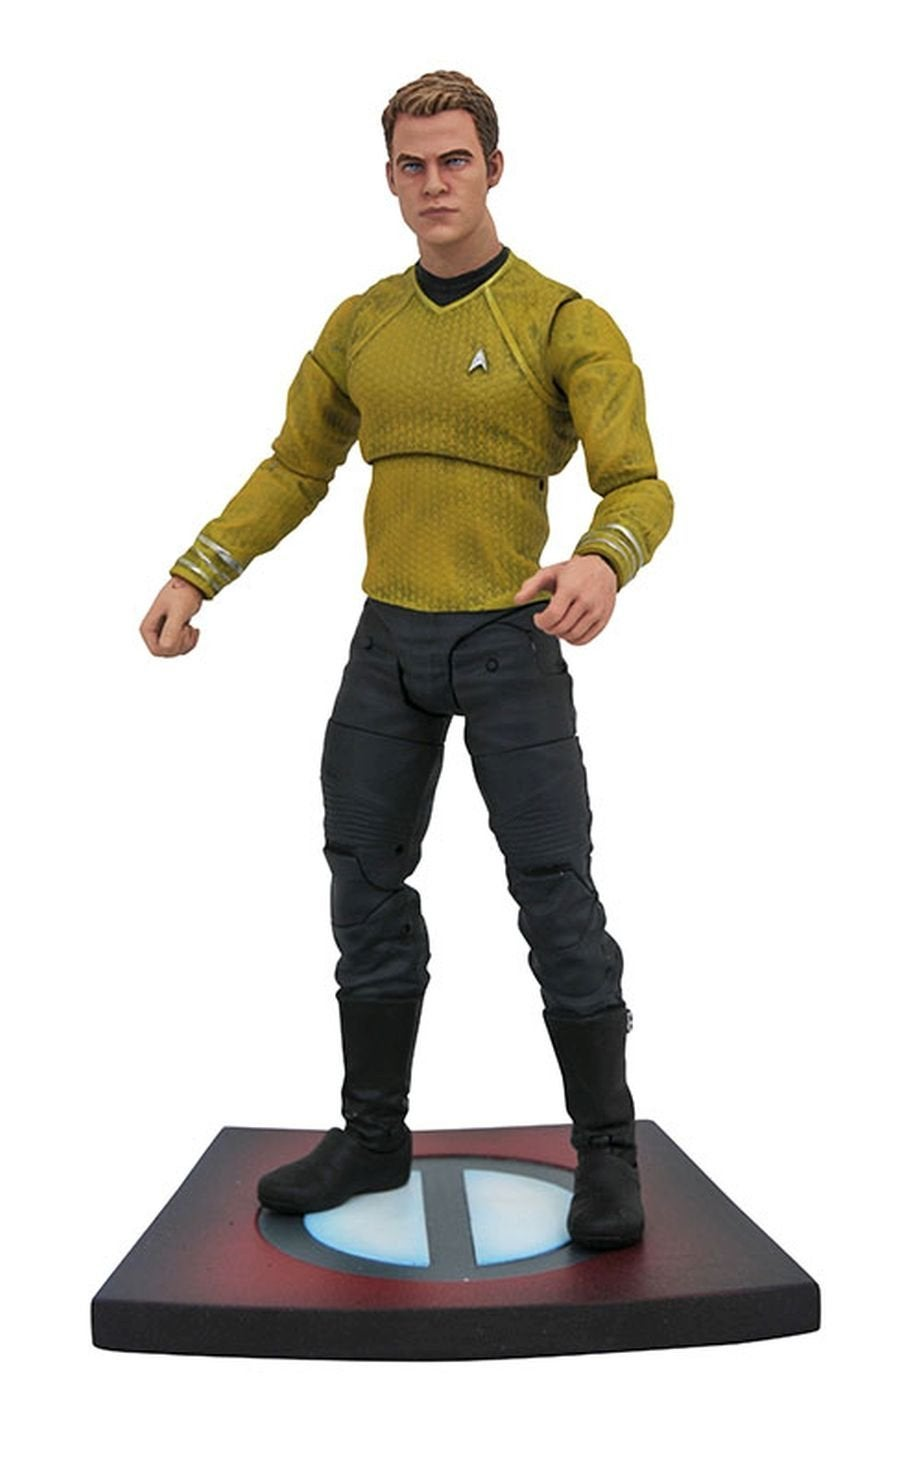 Star Trek Into Darkness Diamond Figures 05